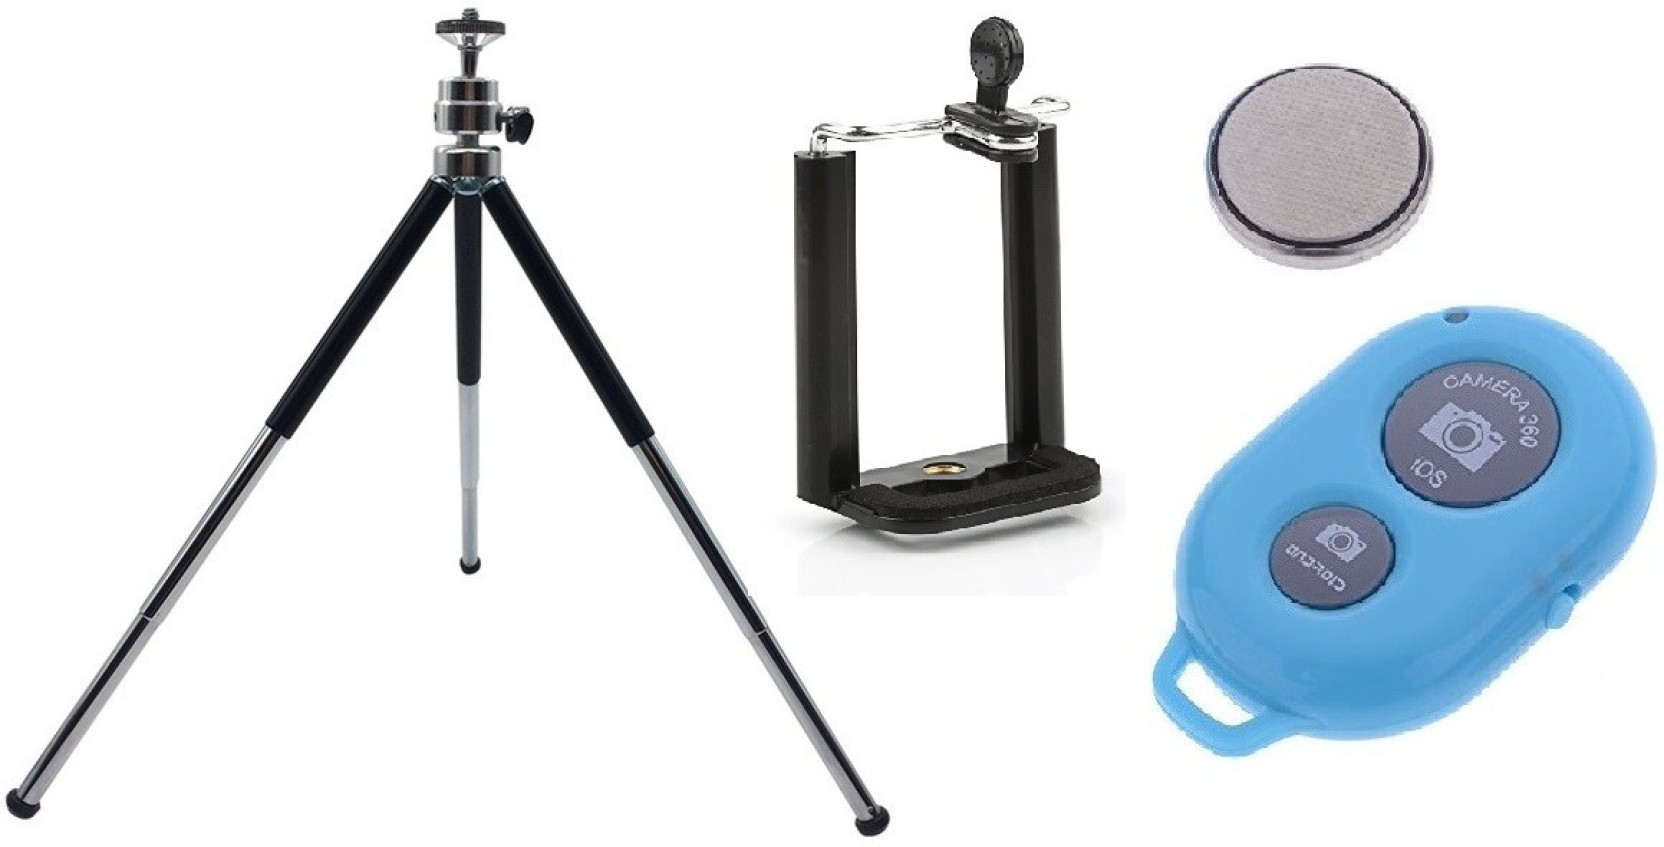 Retrack 10inch Aluminum Metal Mobile Camera Stand With Bracket And Tongsis 3 In 1 Tripod Bluetooth Shutter Add To Cart